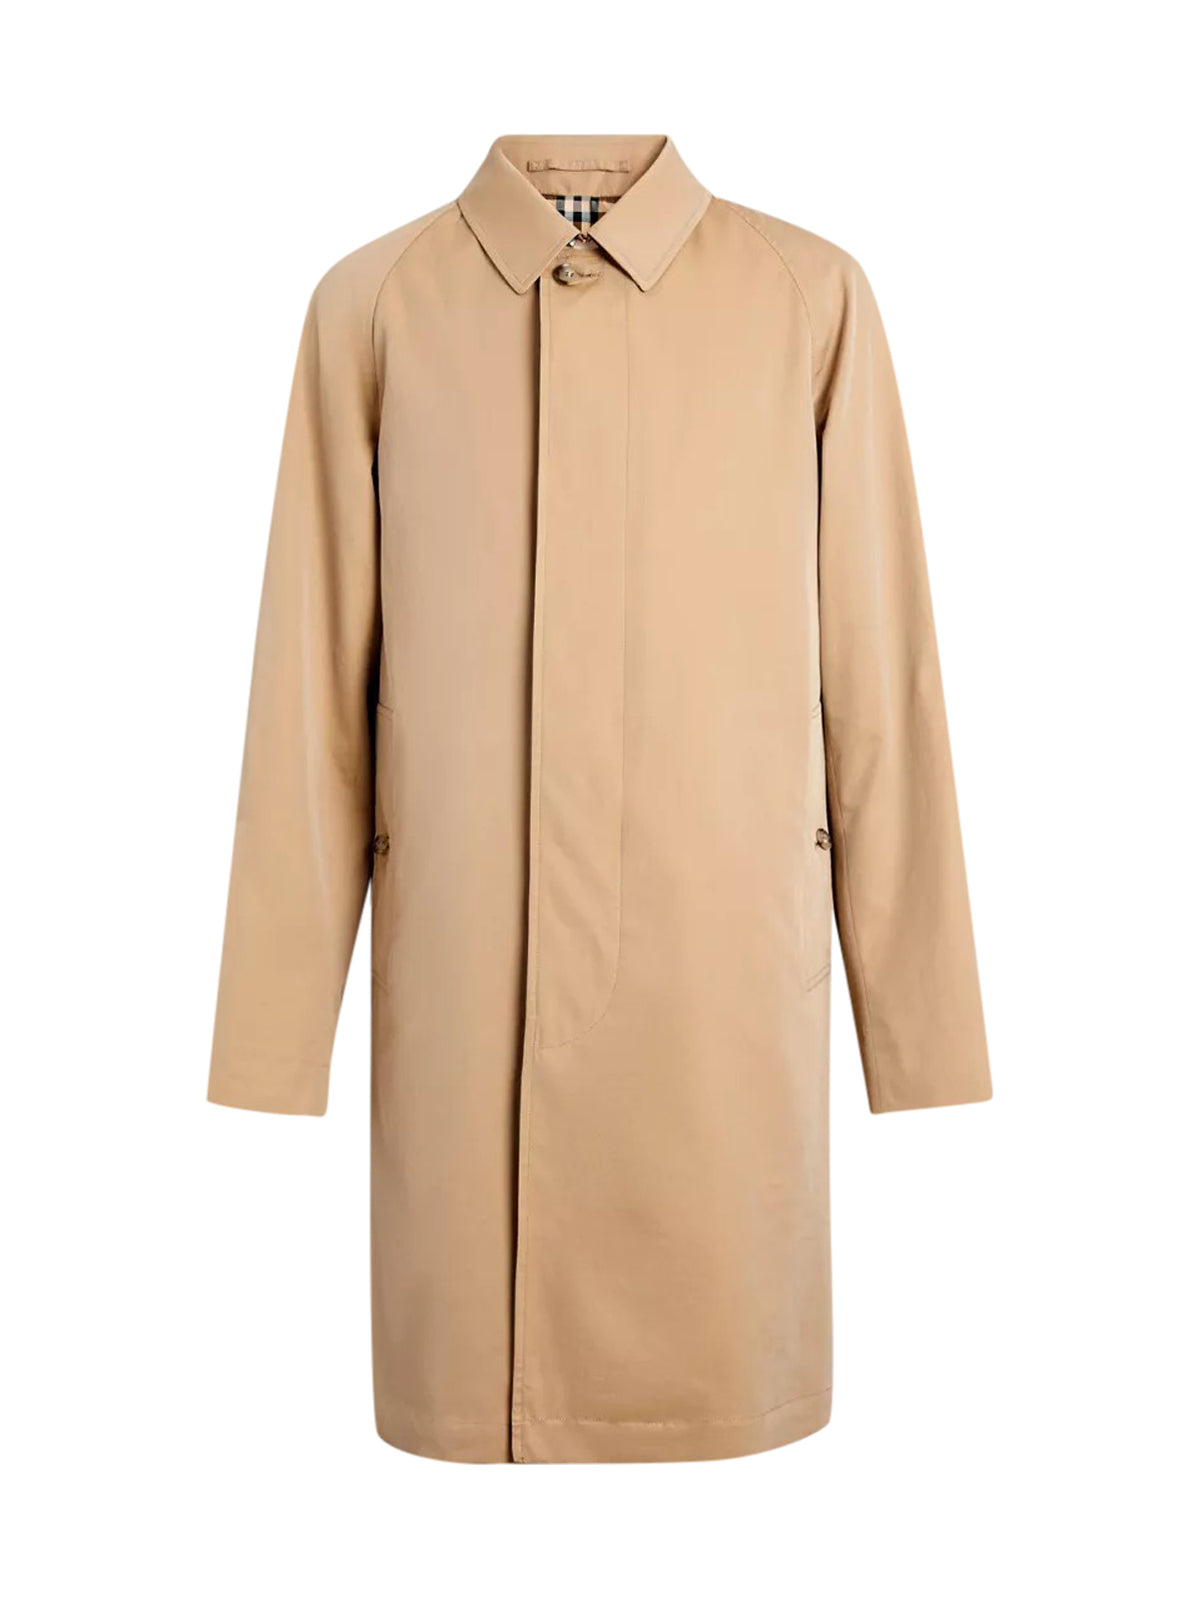 BURBERRY CAMDEN CLASSIC RAGLAN CAR COAT